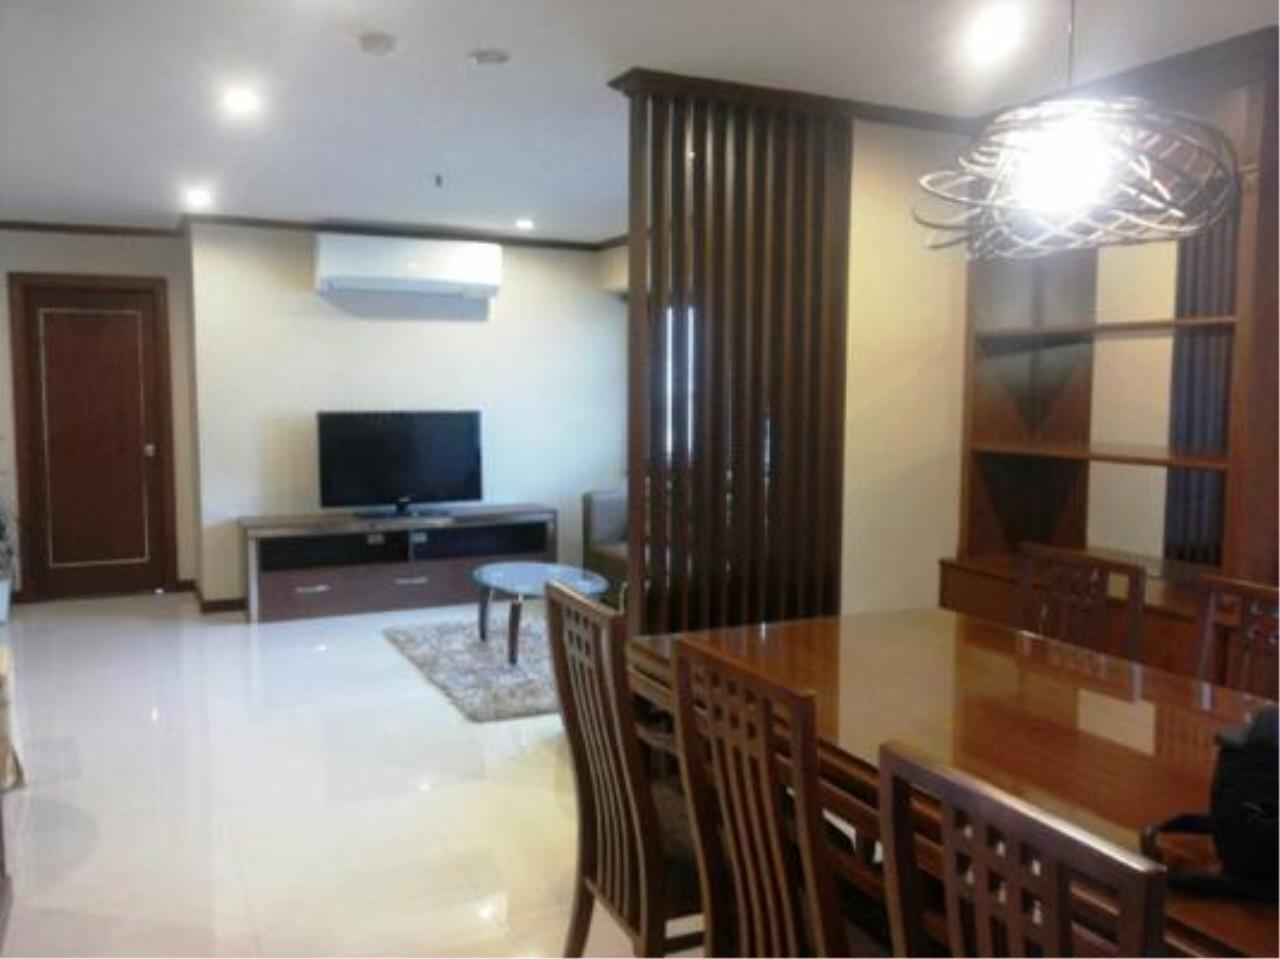 Right Move Thailand Agency's CA1593 Baan Suanpetch For Rent & Sale 70,000 THB 3 Bedrooms 129 Sqm 4